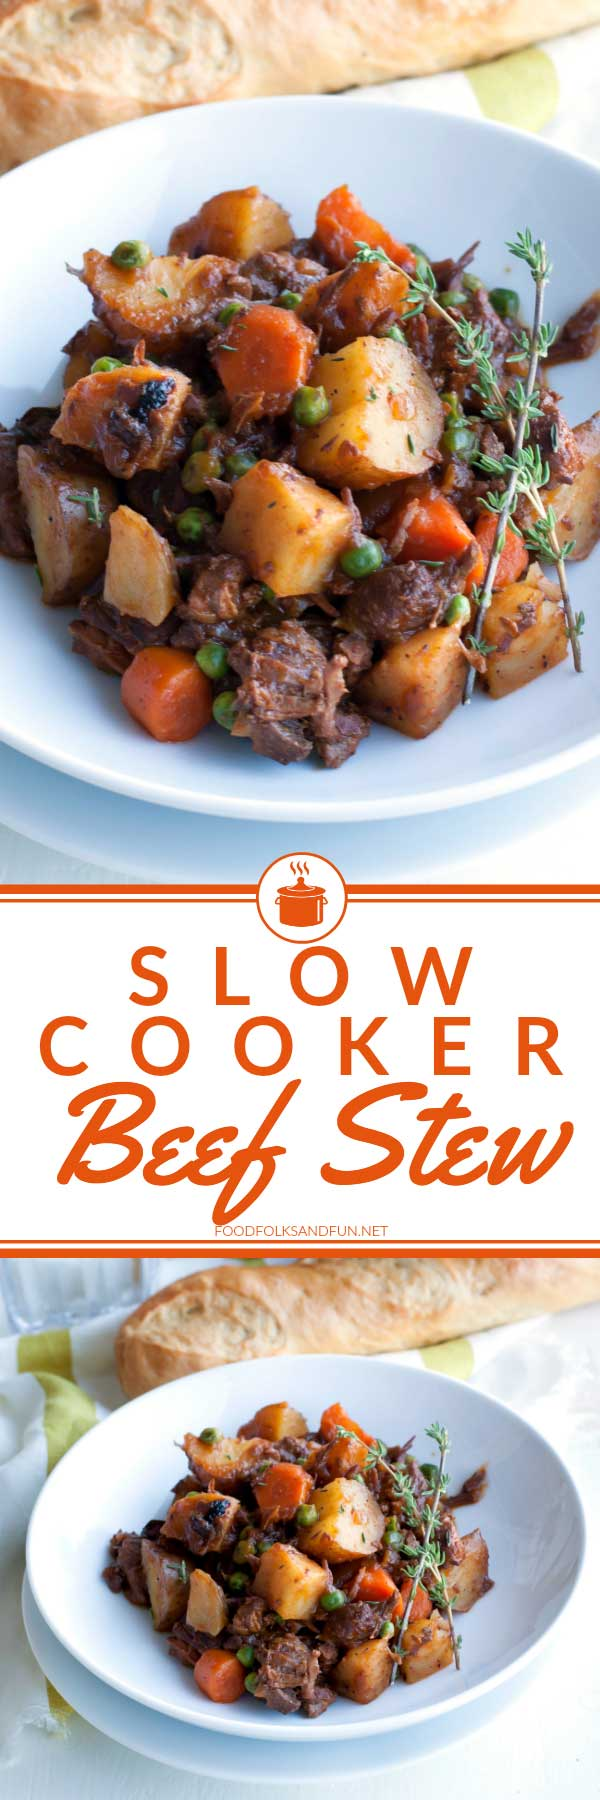 Classic stick-to-your-ribs beef stew that's loaded with vegetables, and made in the slow cooker. It's perfect for chilly days and for company!